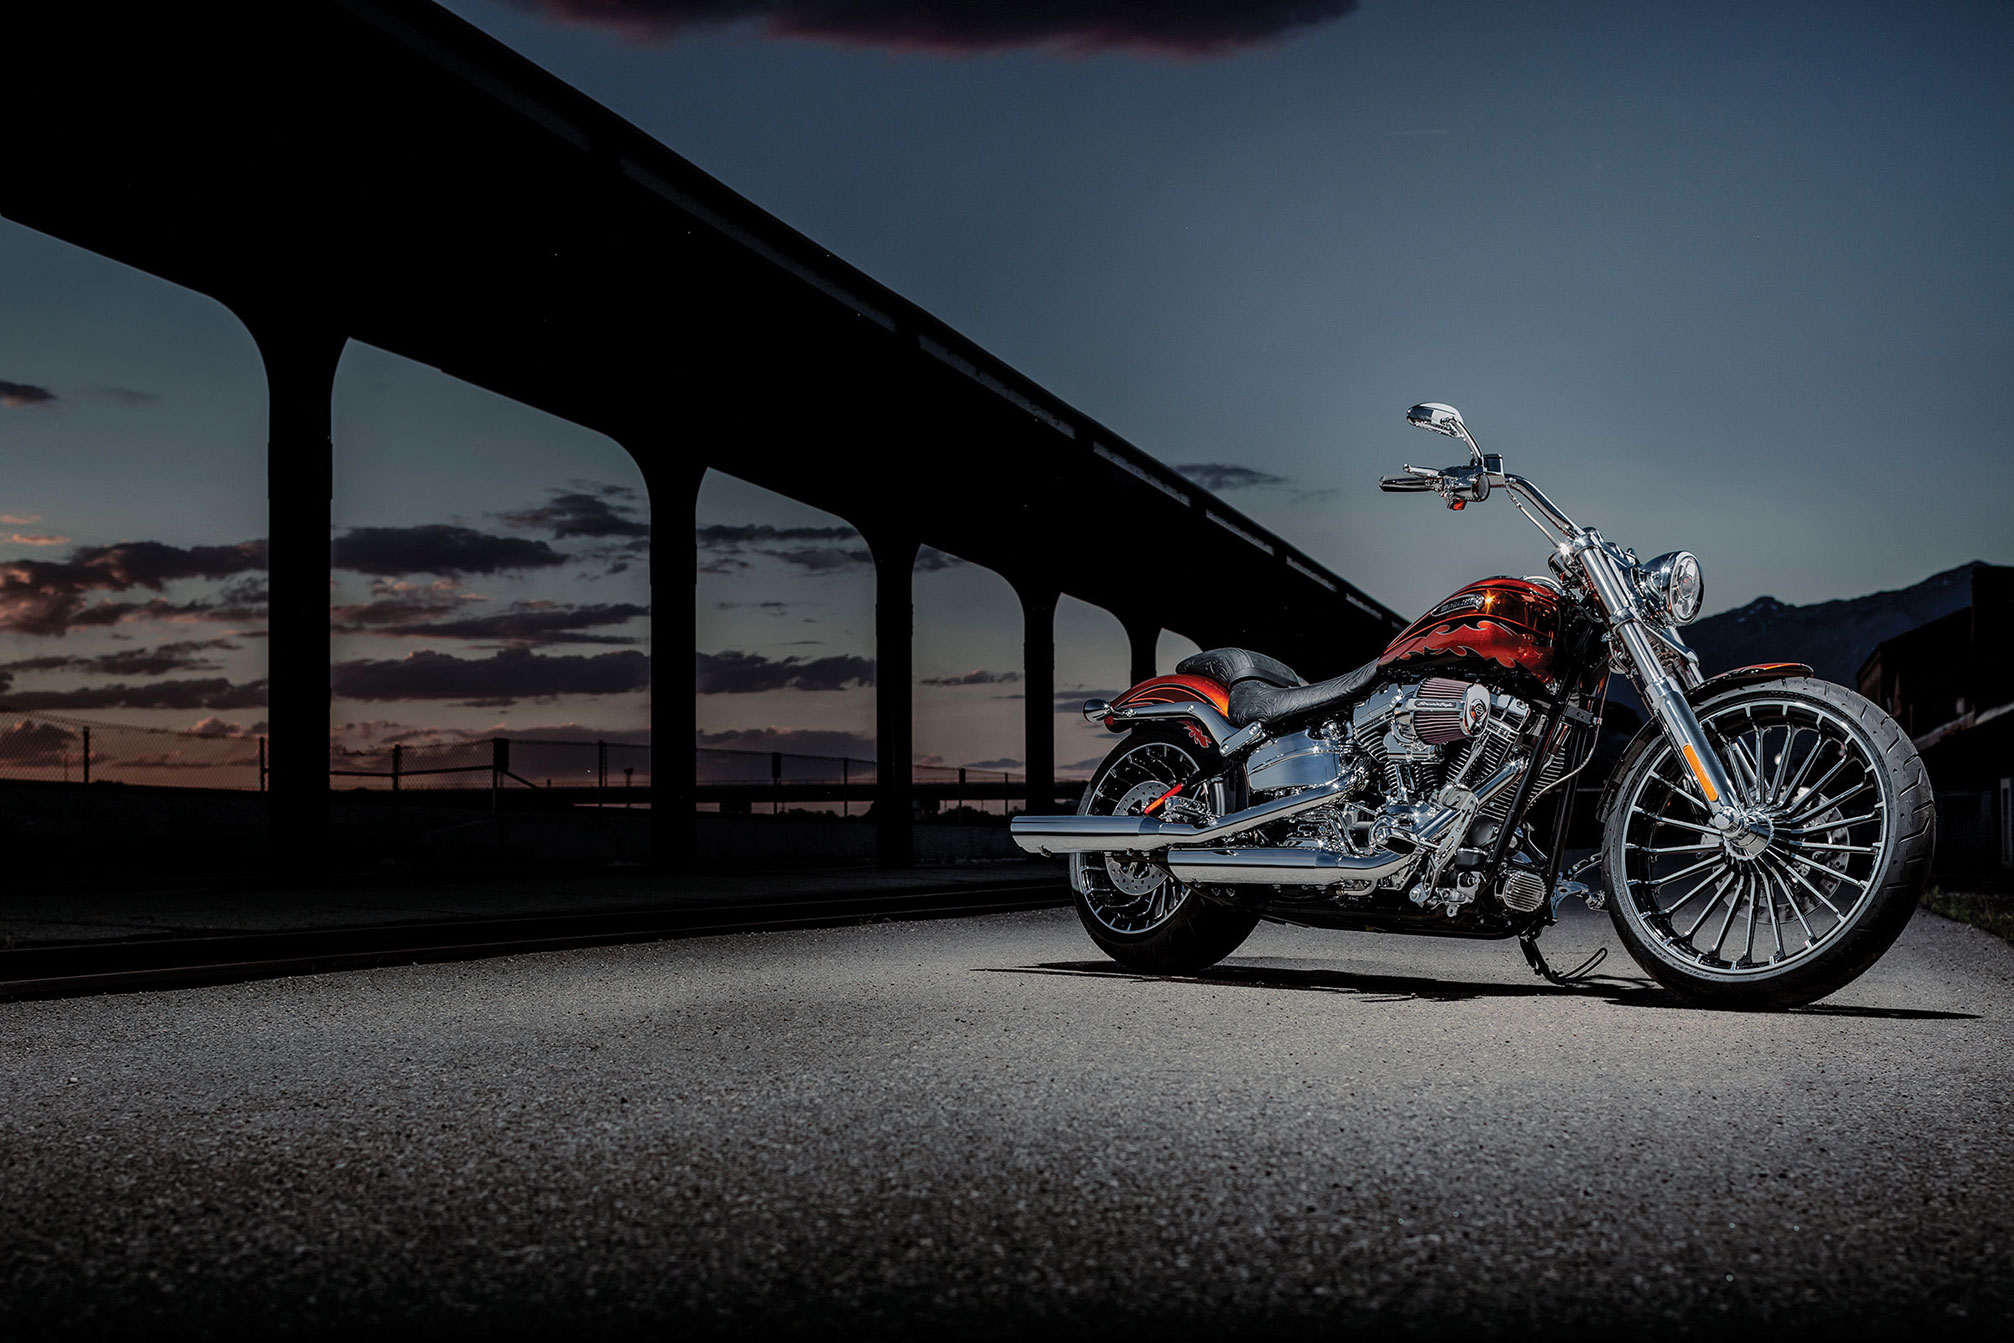 harley davidson wallpapers HD 2014x1343